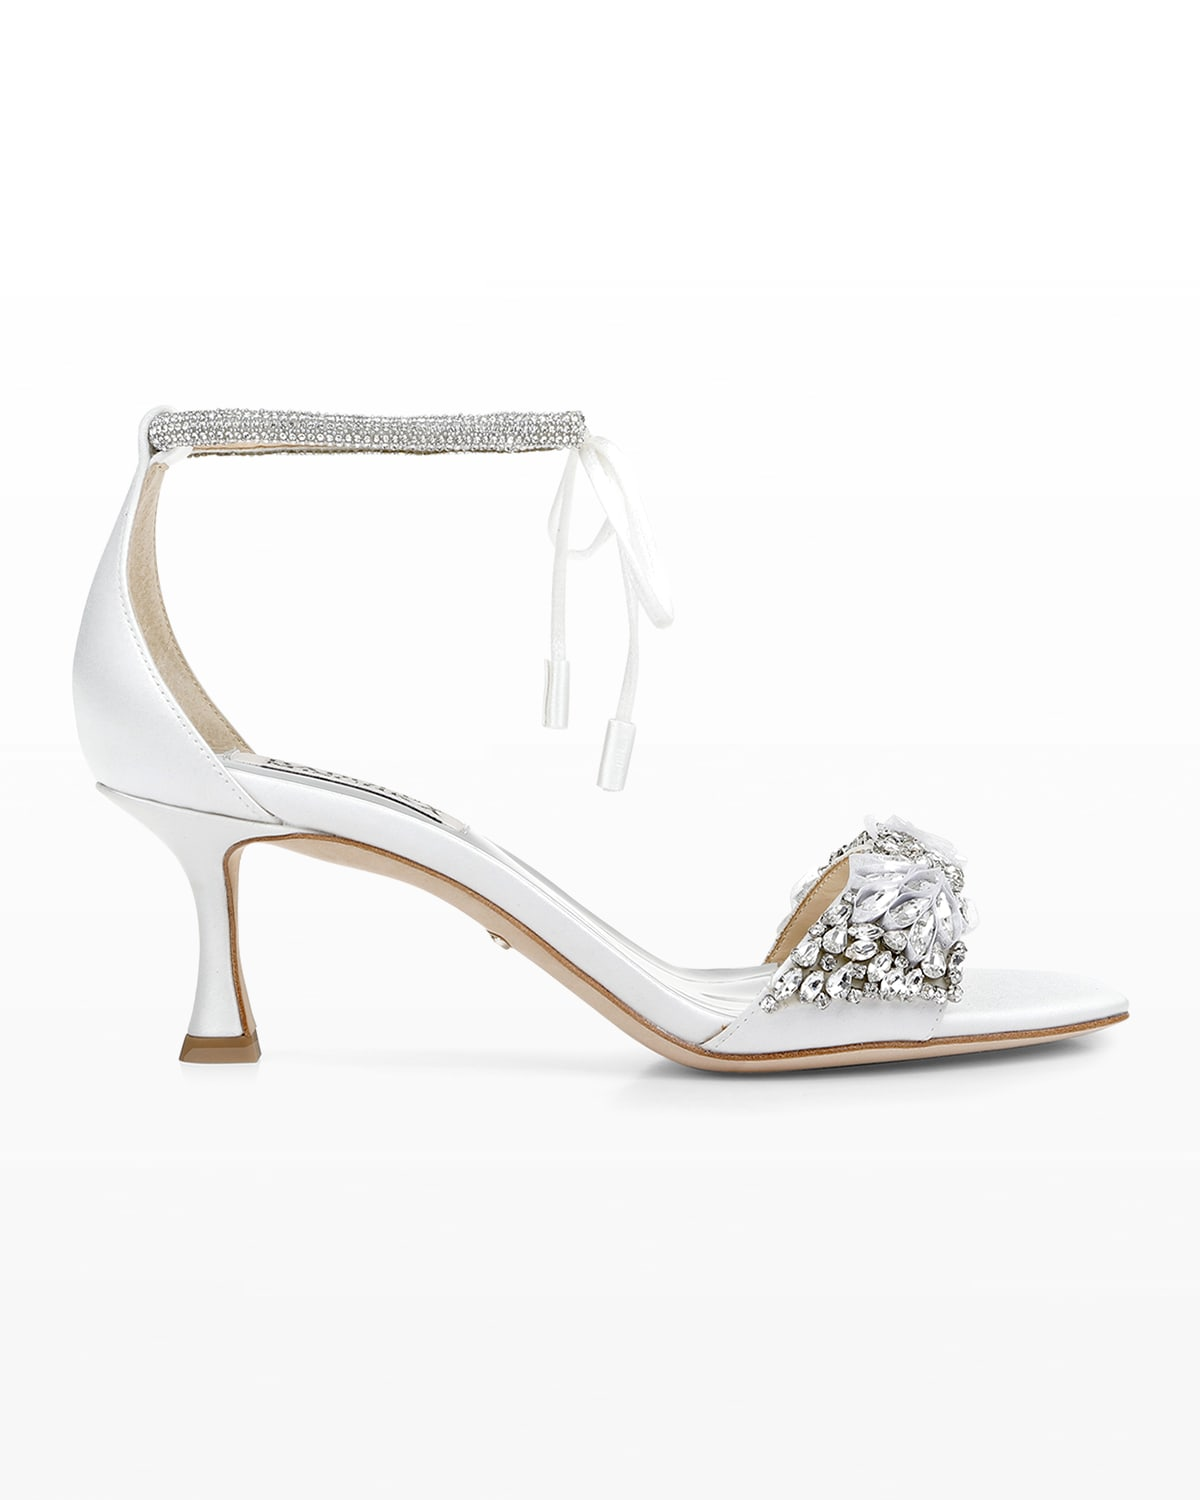 Blossom Satin Crystal Ankle-Tie Sandals